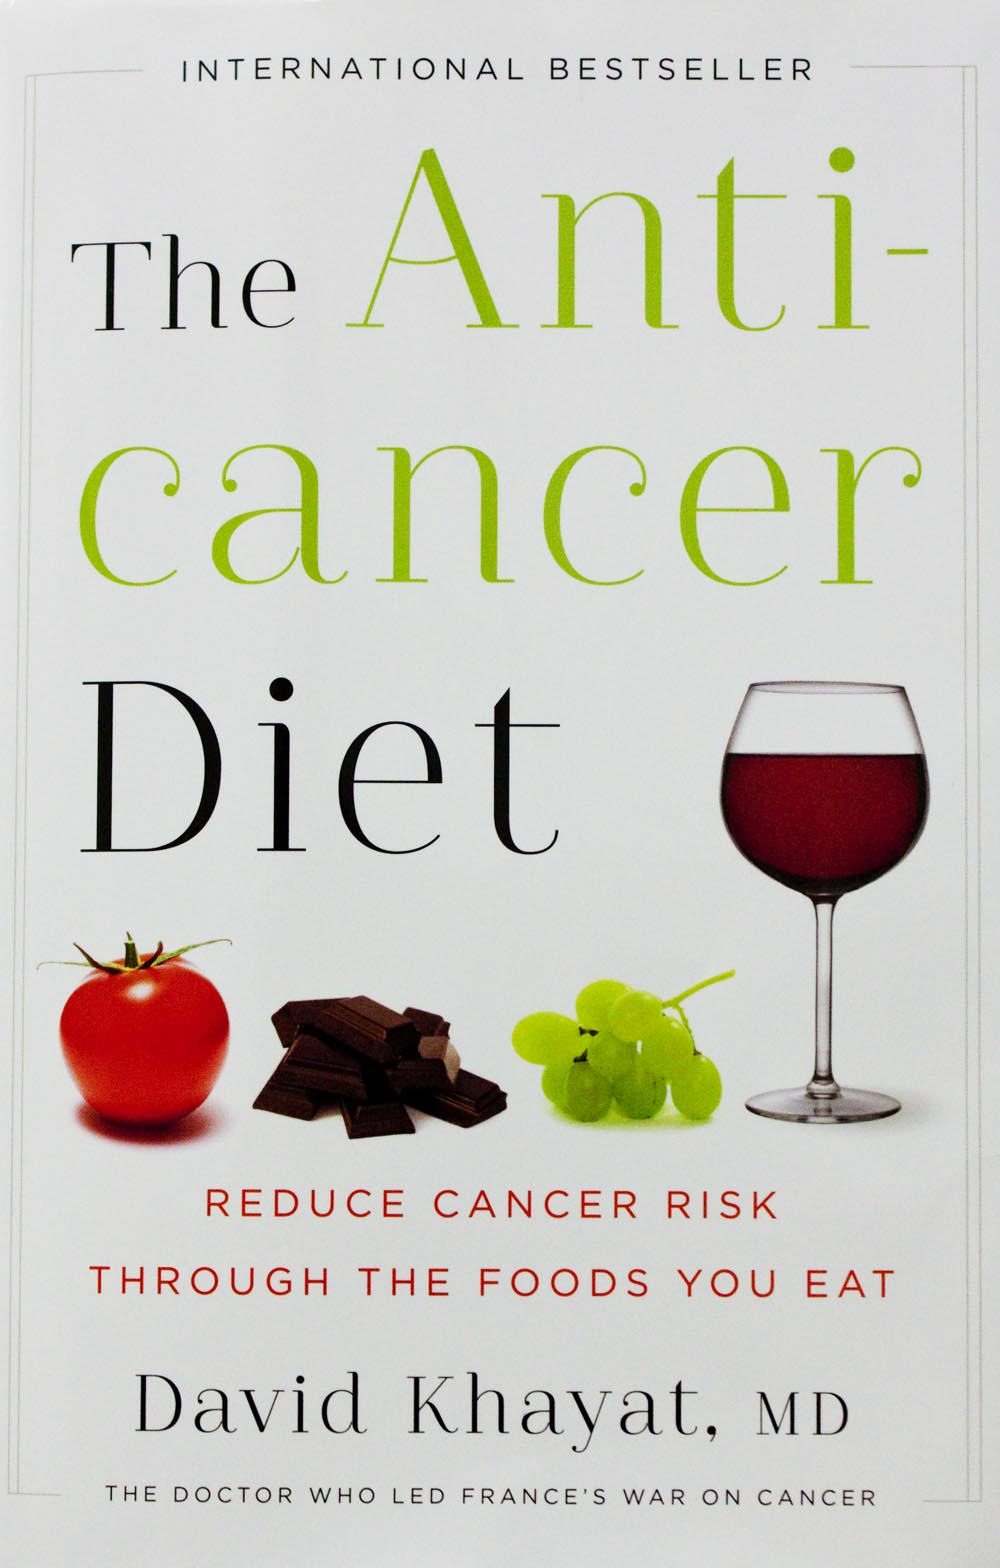 """The Anti-Cancer Diet"" by David Khayat, M.D."